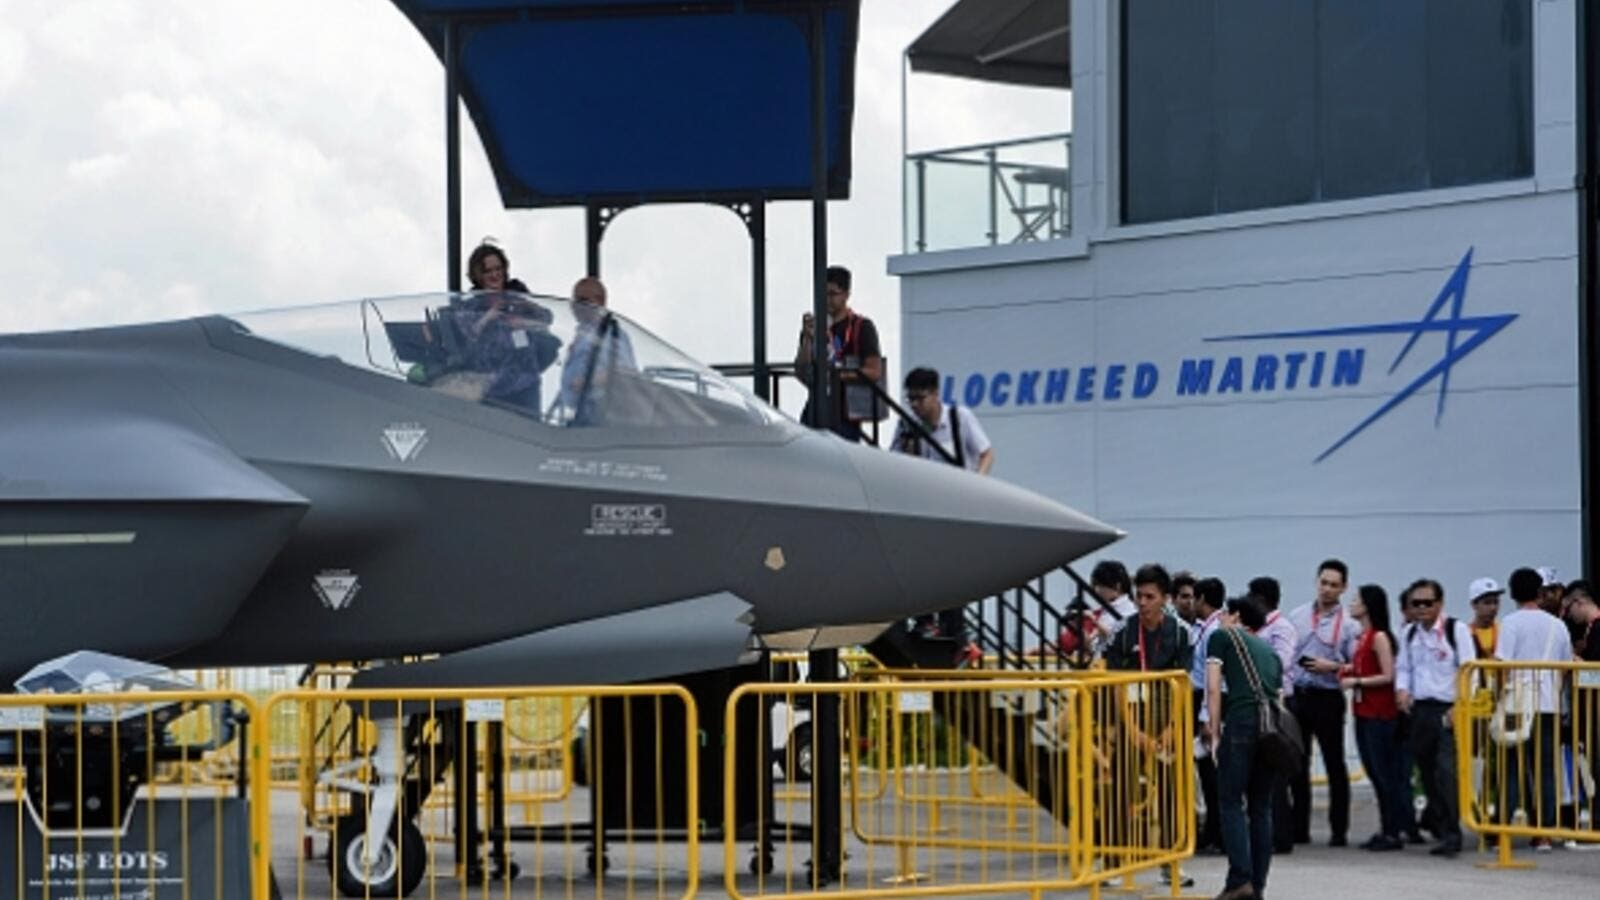 Visitors queue to have closer look at a static display of a Lockheed Martin F-35 at the Singapore Airshow in Singapore on February 18, 2016. (AFP/Roslam Rahman)